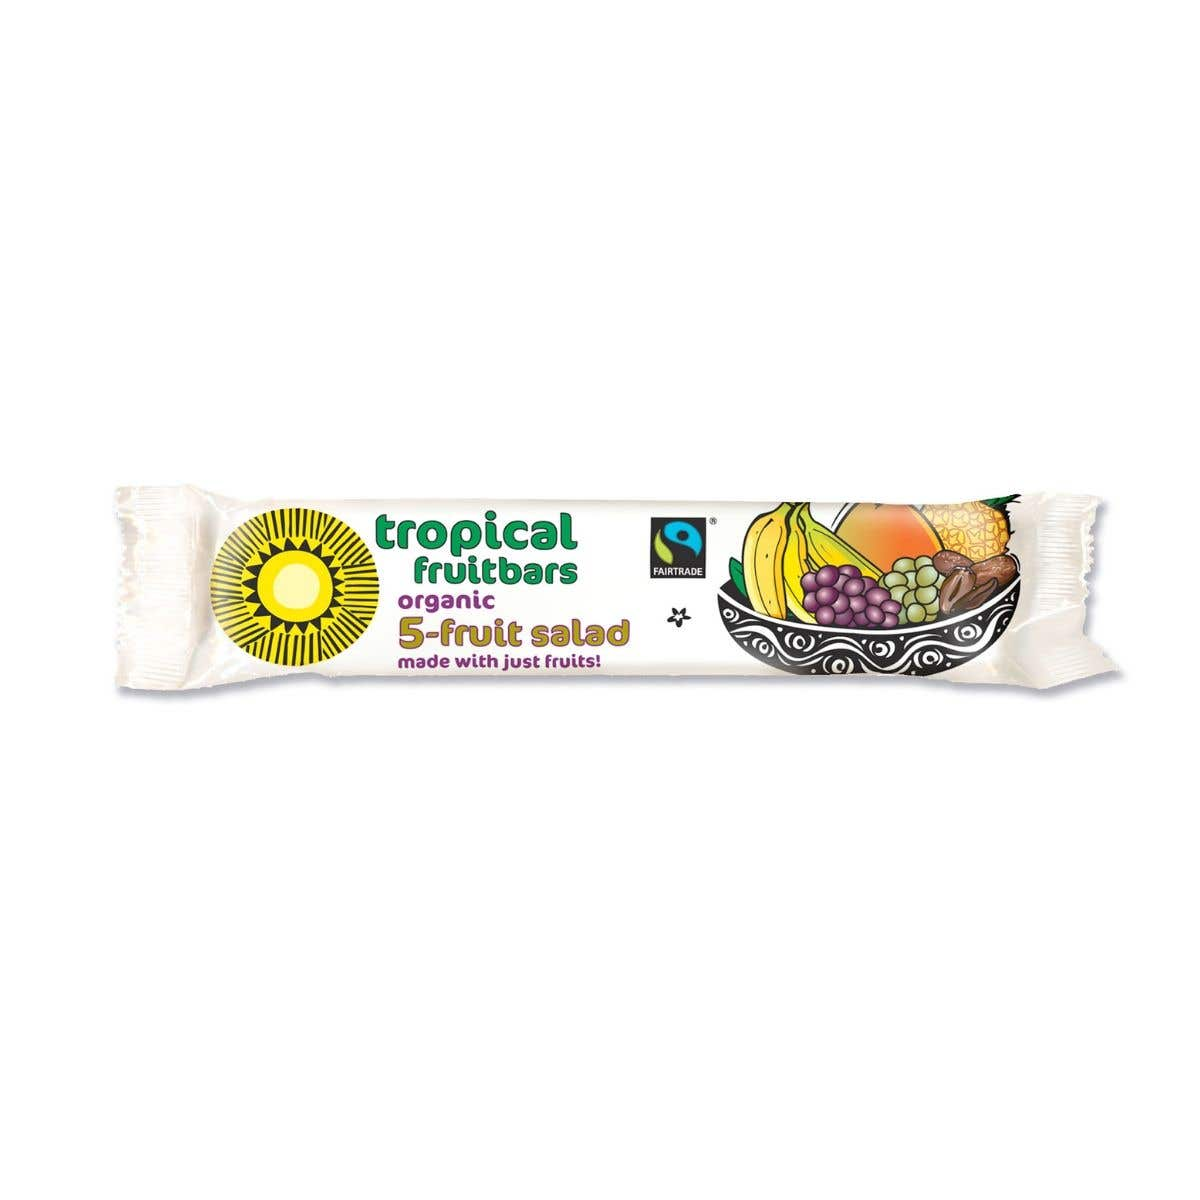 Tropical Wholefood Fair Trade Organic 5 Fruit Salad Bar SINGLE